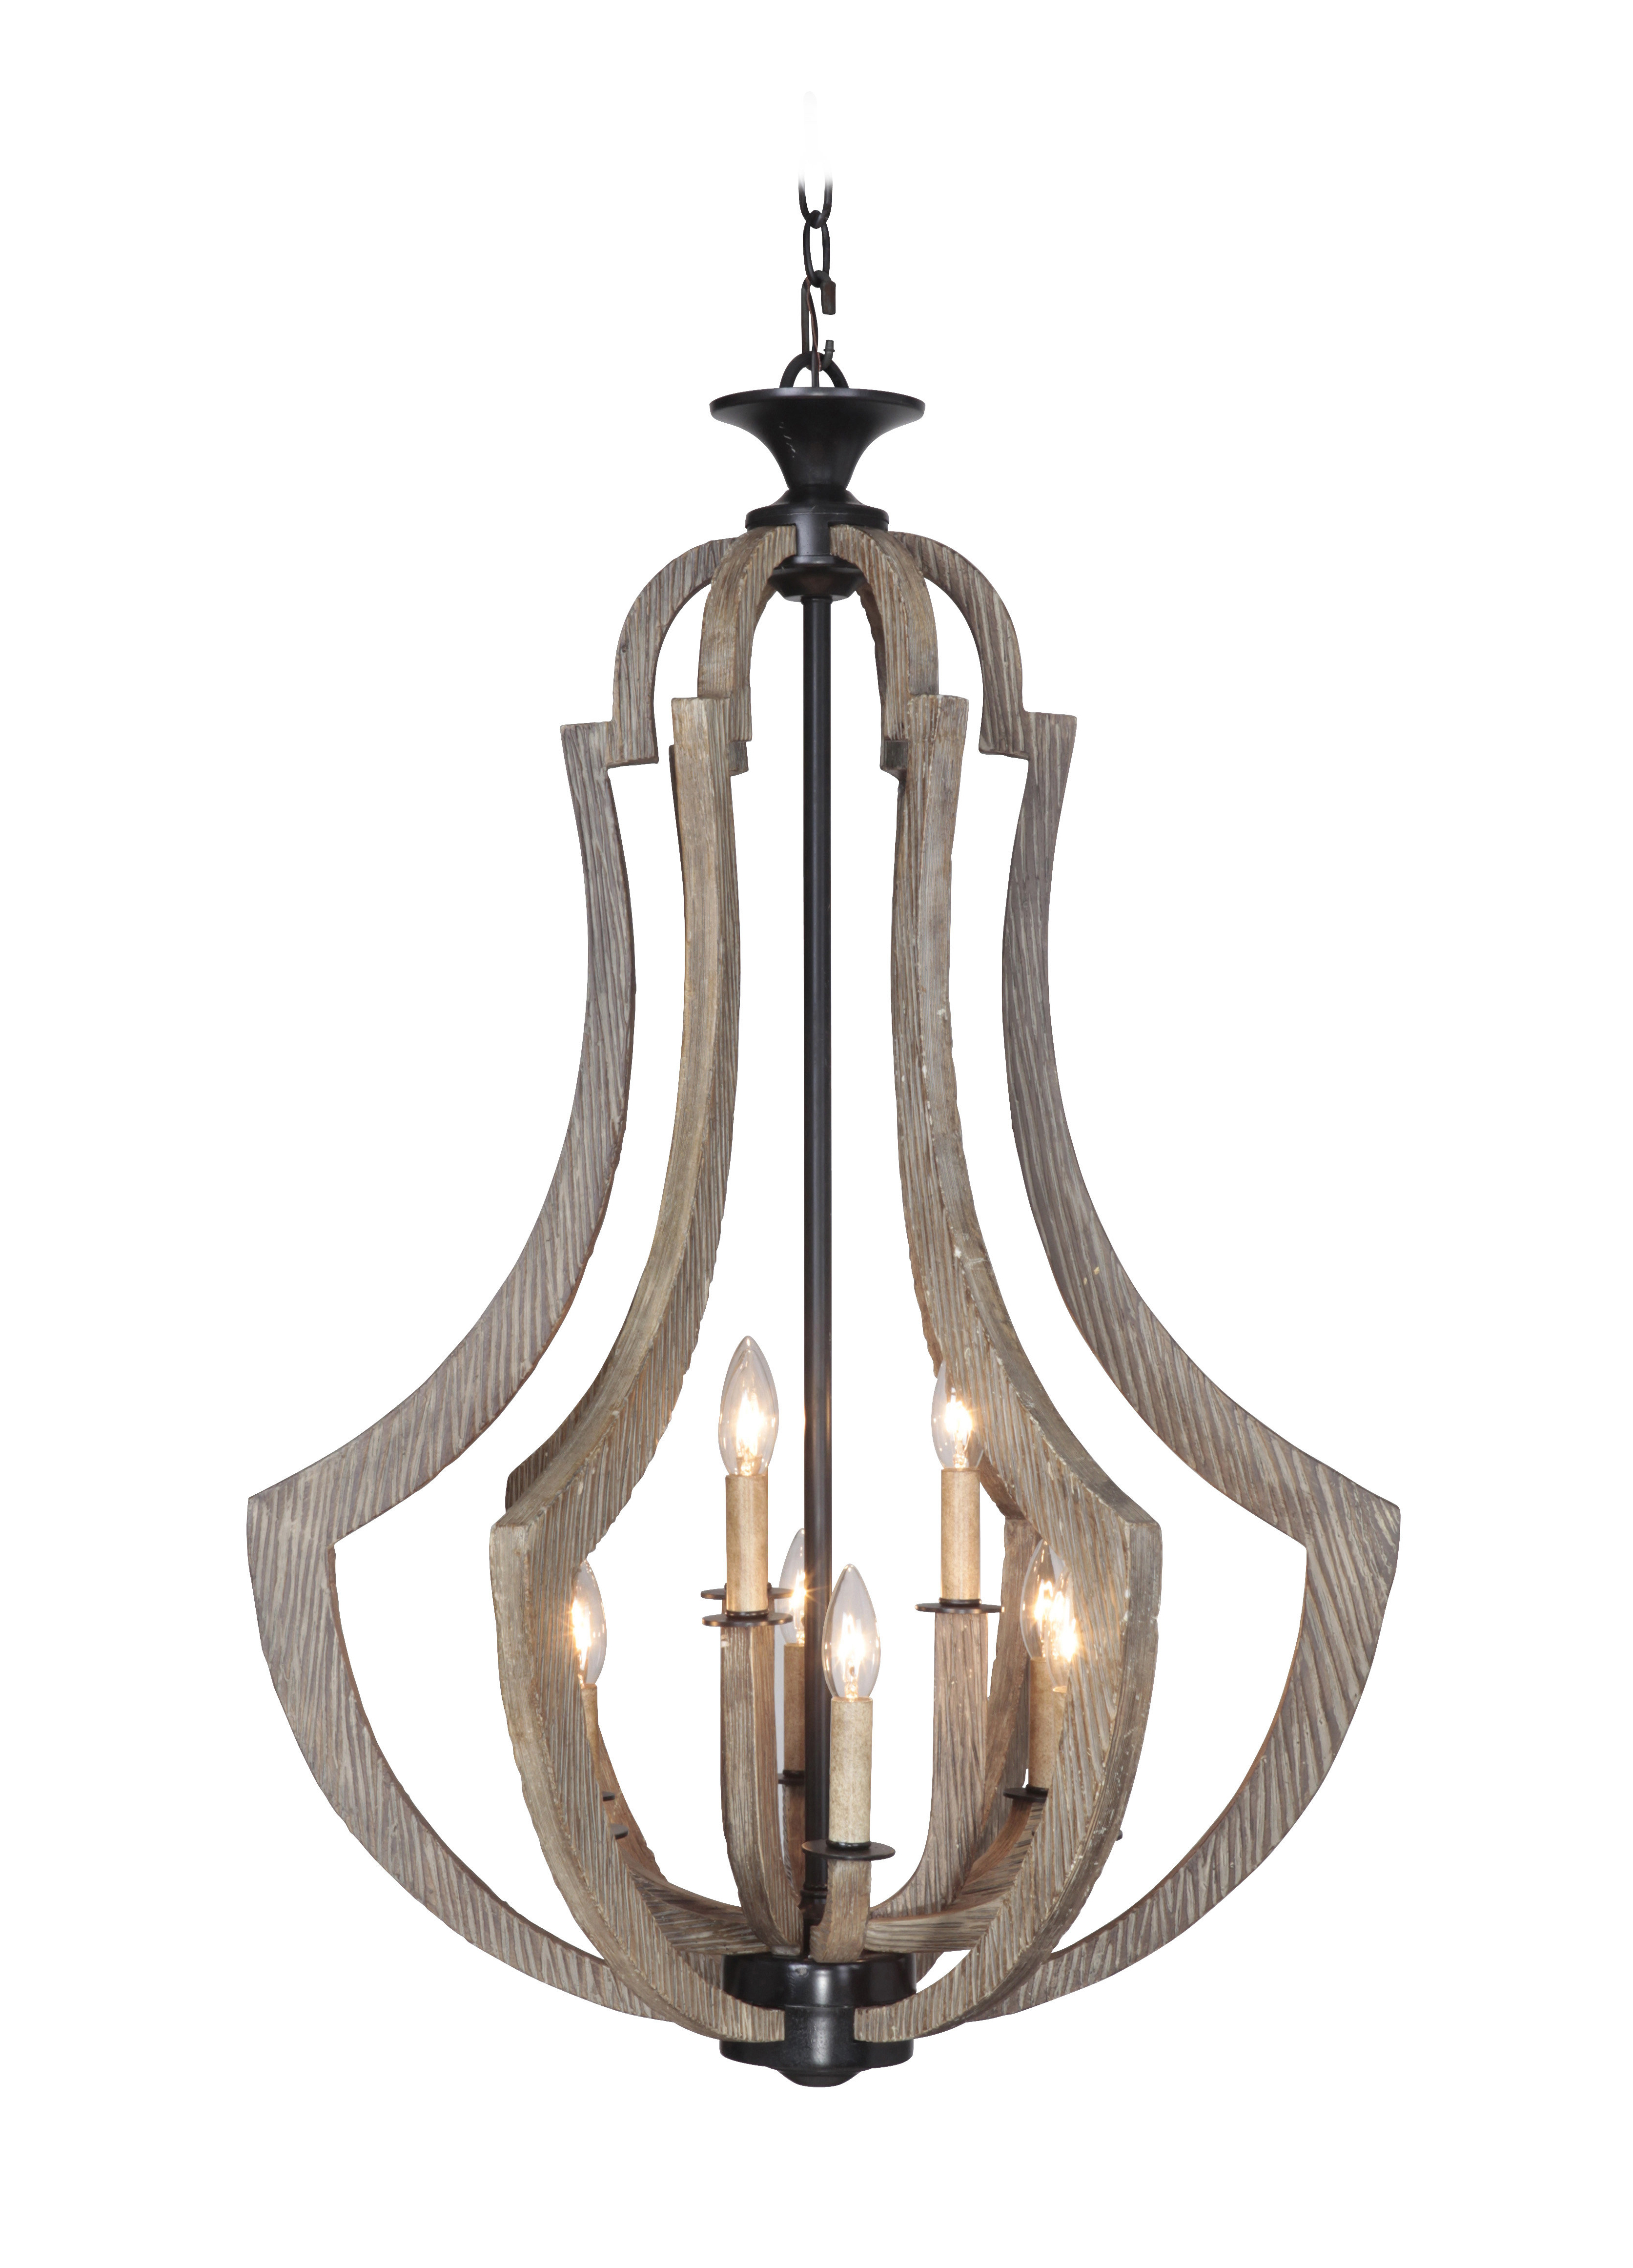 Kenna 5 Light Empire Chandeliers For Latest Radtke 9 Light Empire Chandelier (Gallery 20 of 25)